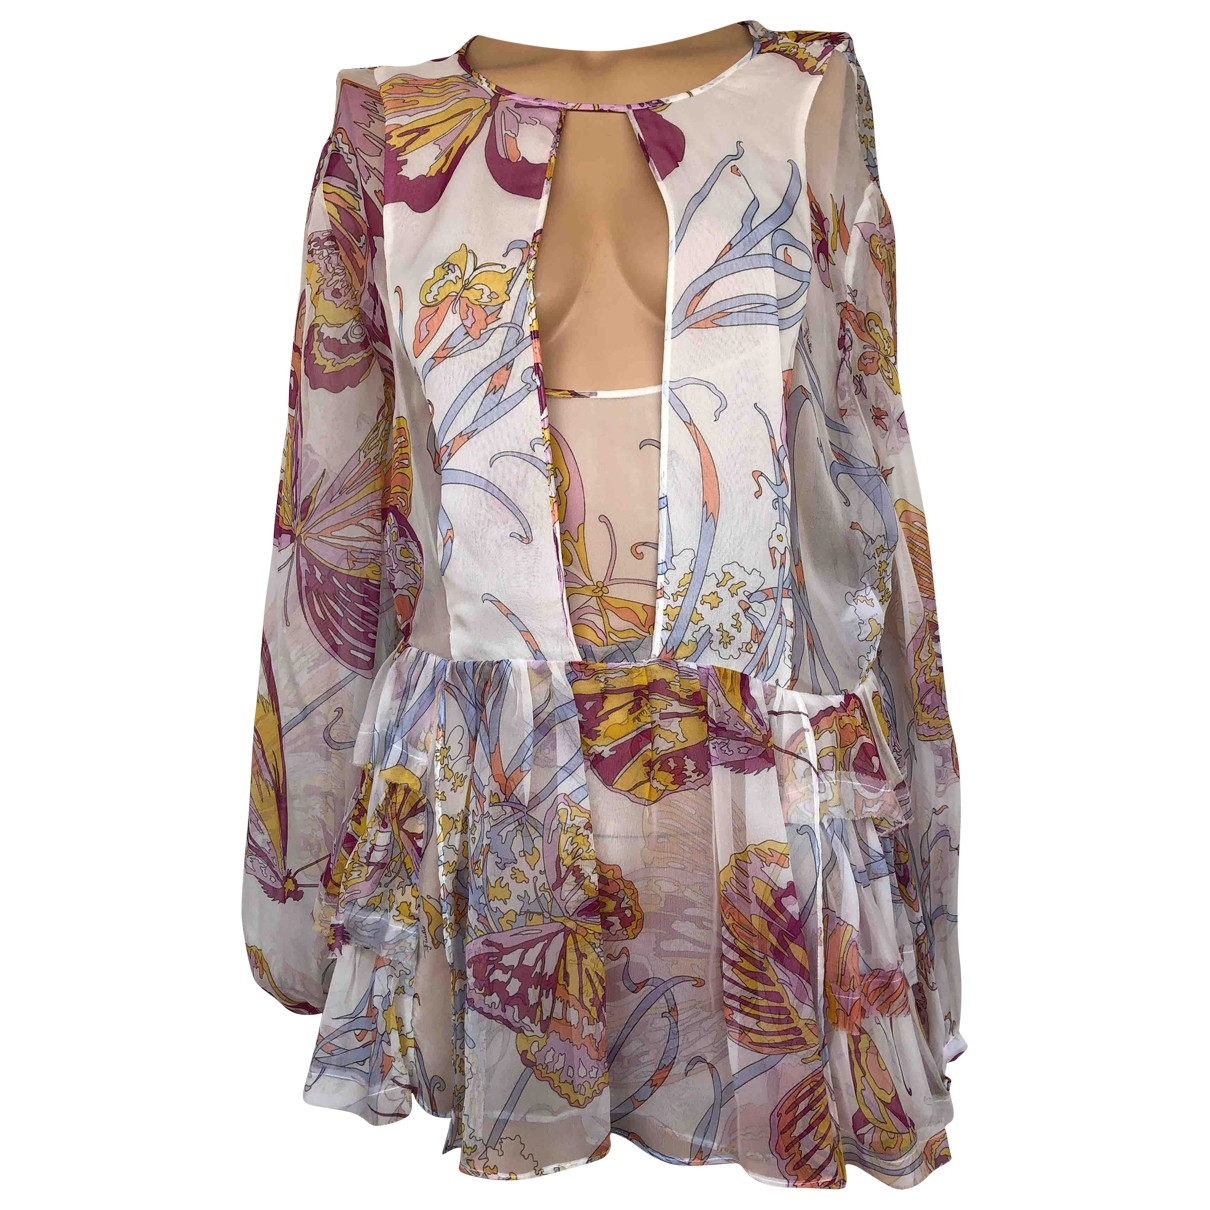 Emilio Pucci \N Multicolour Silk  top for Women 38 IT